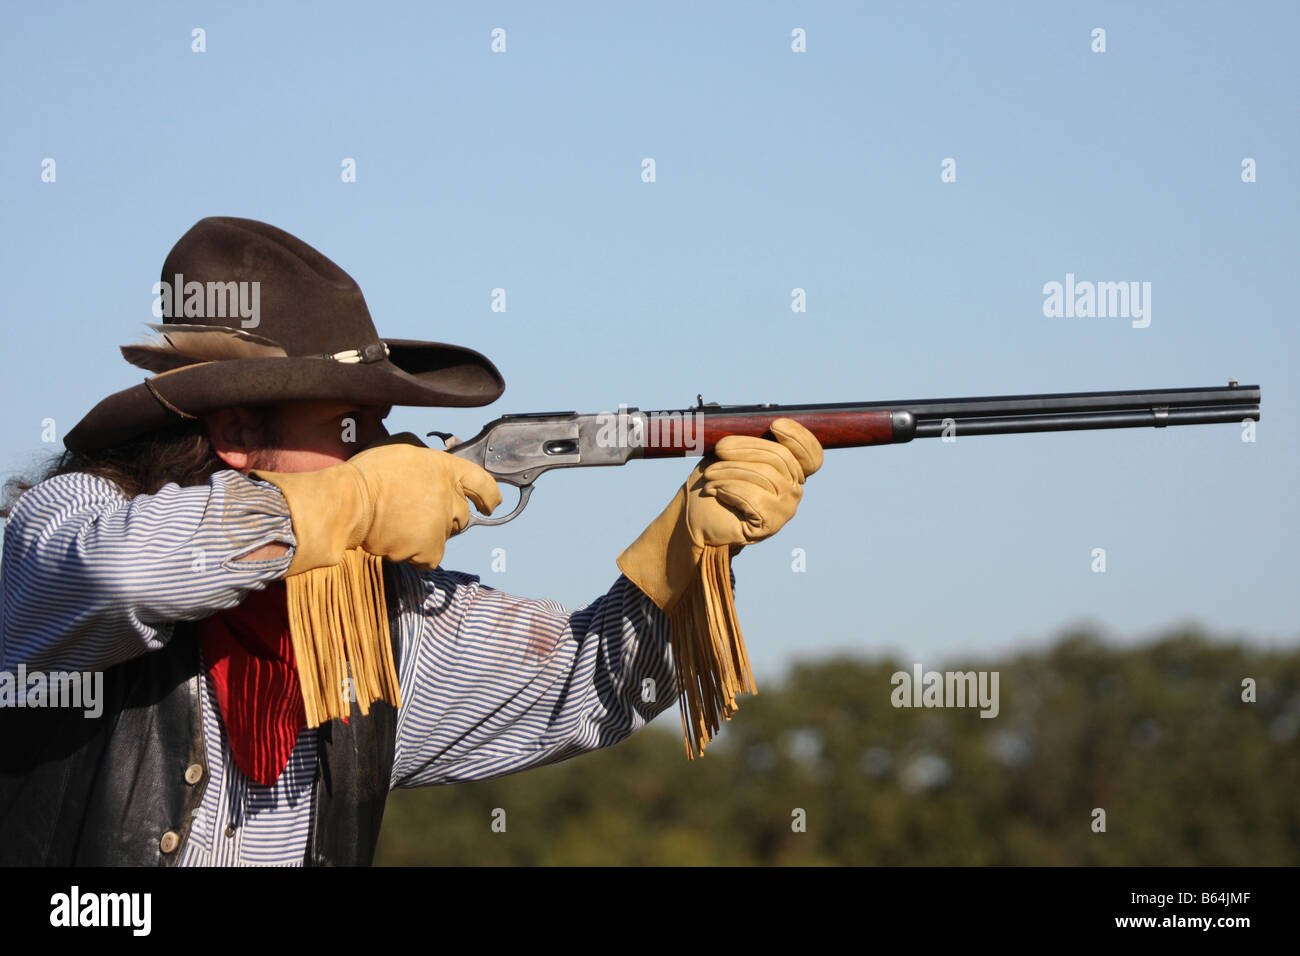 A Cowboy Taking Aim With His Rifle On Horseback In The Old